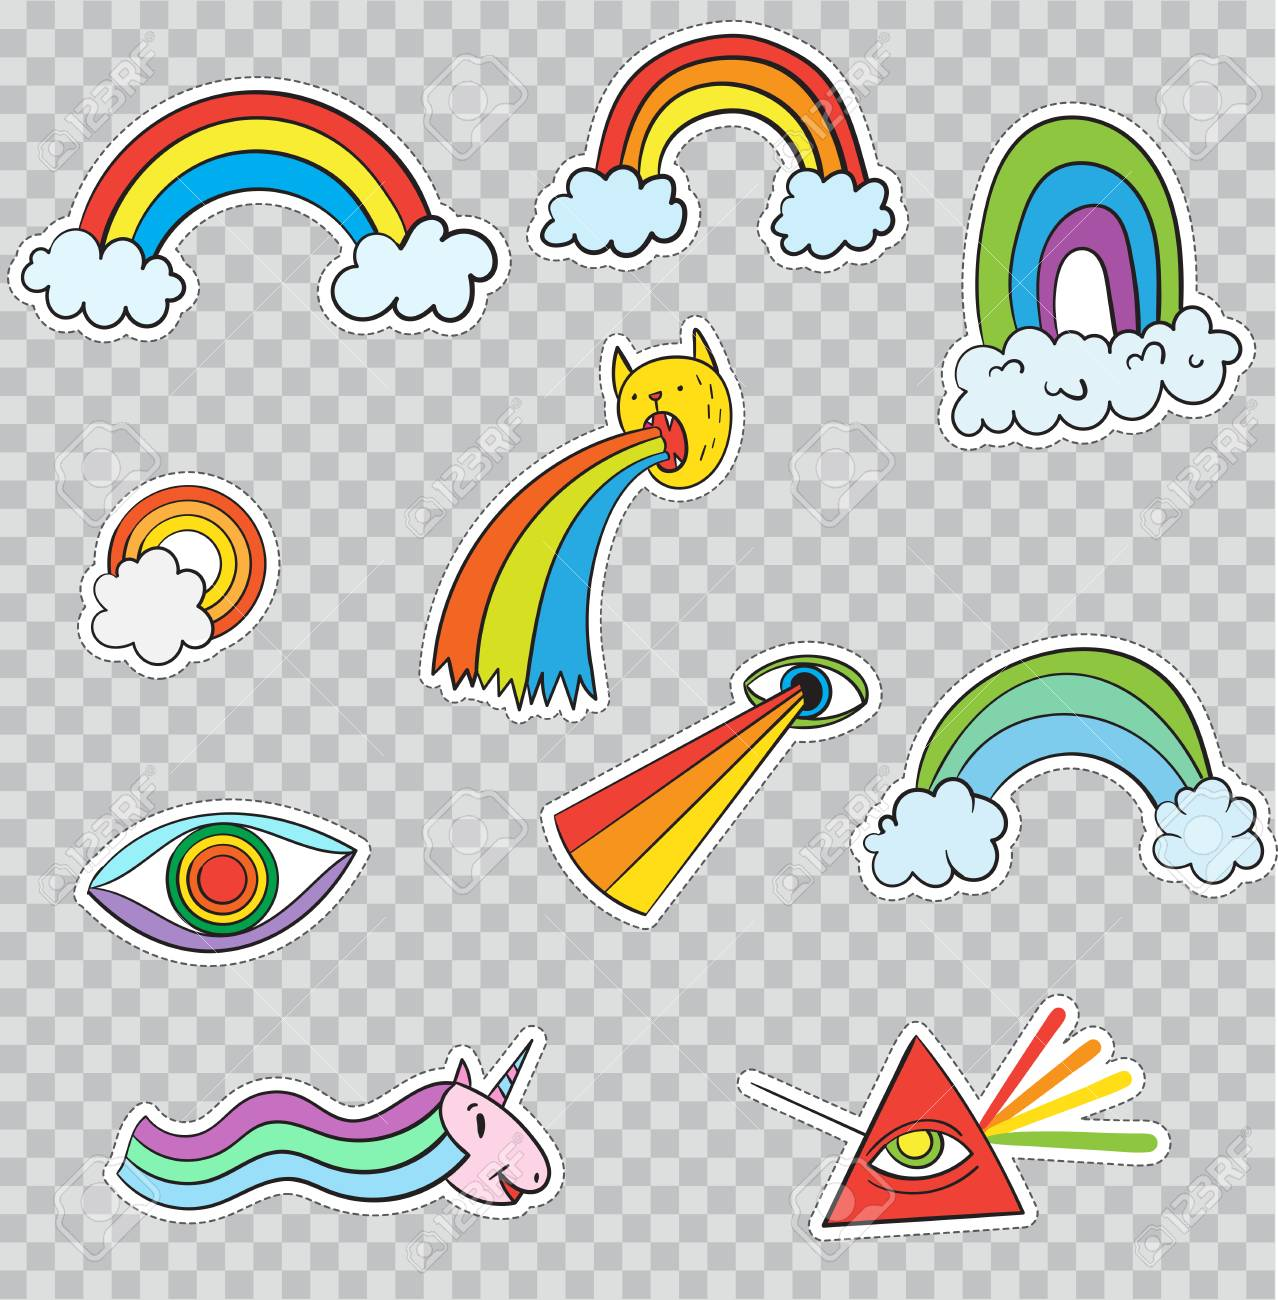 Patch Badges With Fancy Rainbows Vector Illustration Isolated On Transparent Background Set Pack Of